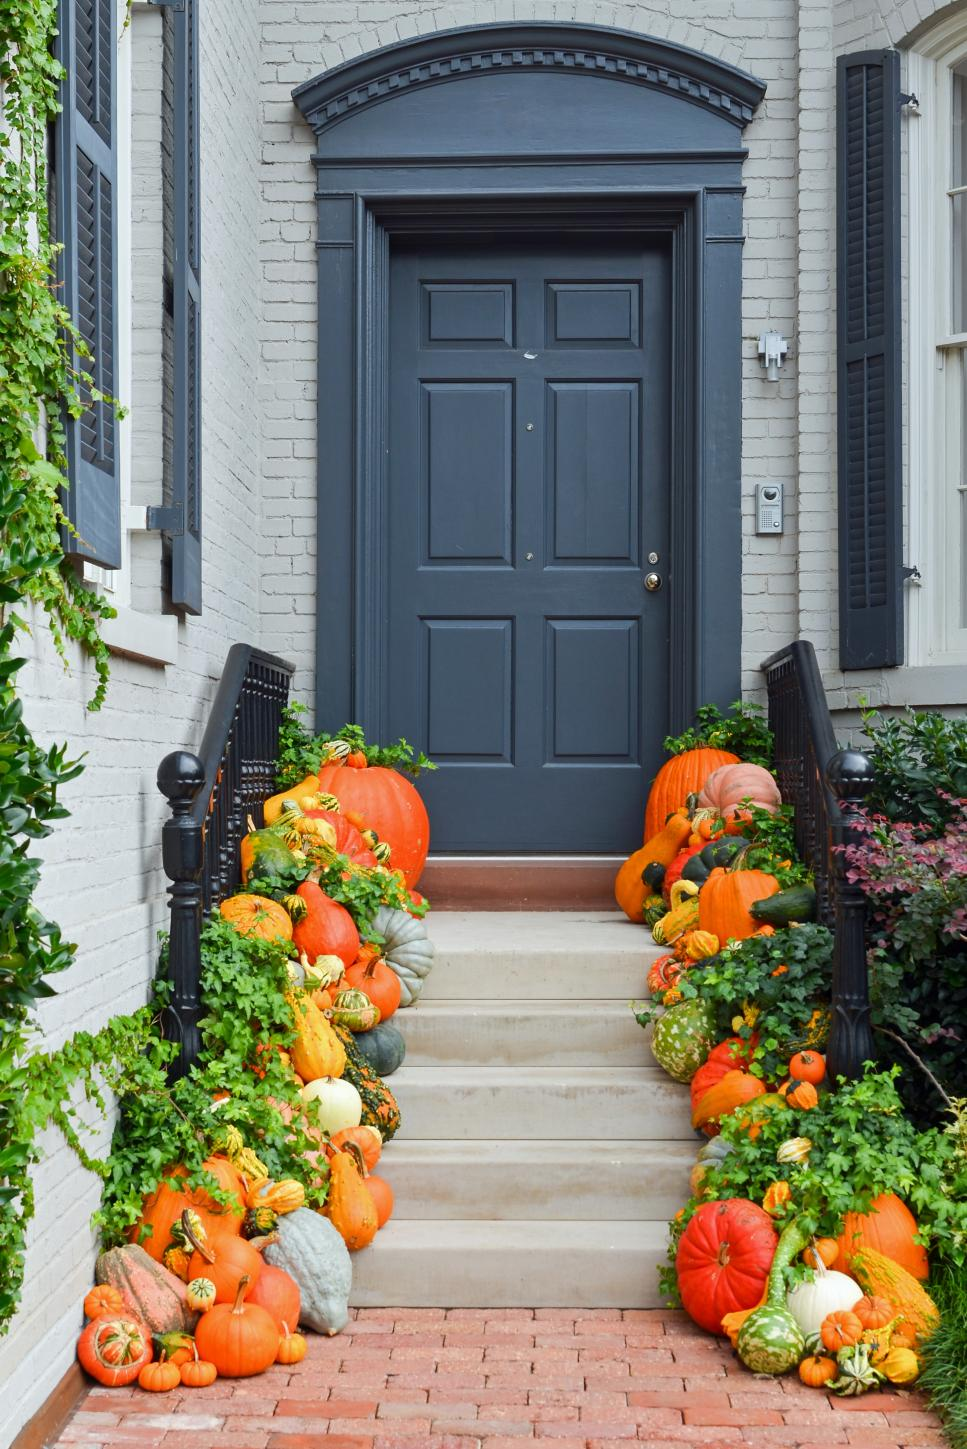 10 easy essentials for outdoor fall decorating diy for Front yard decorating ideas